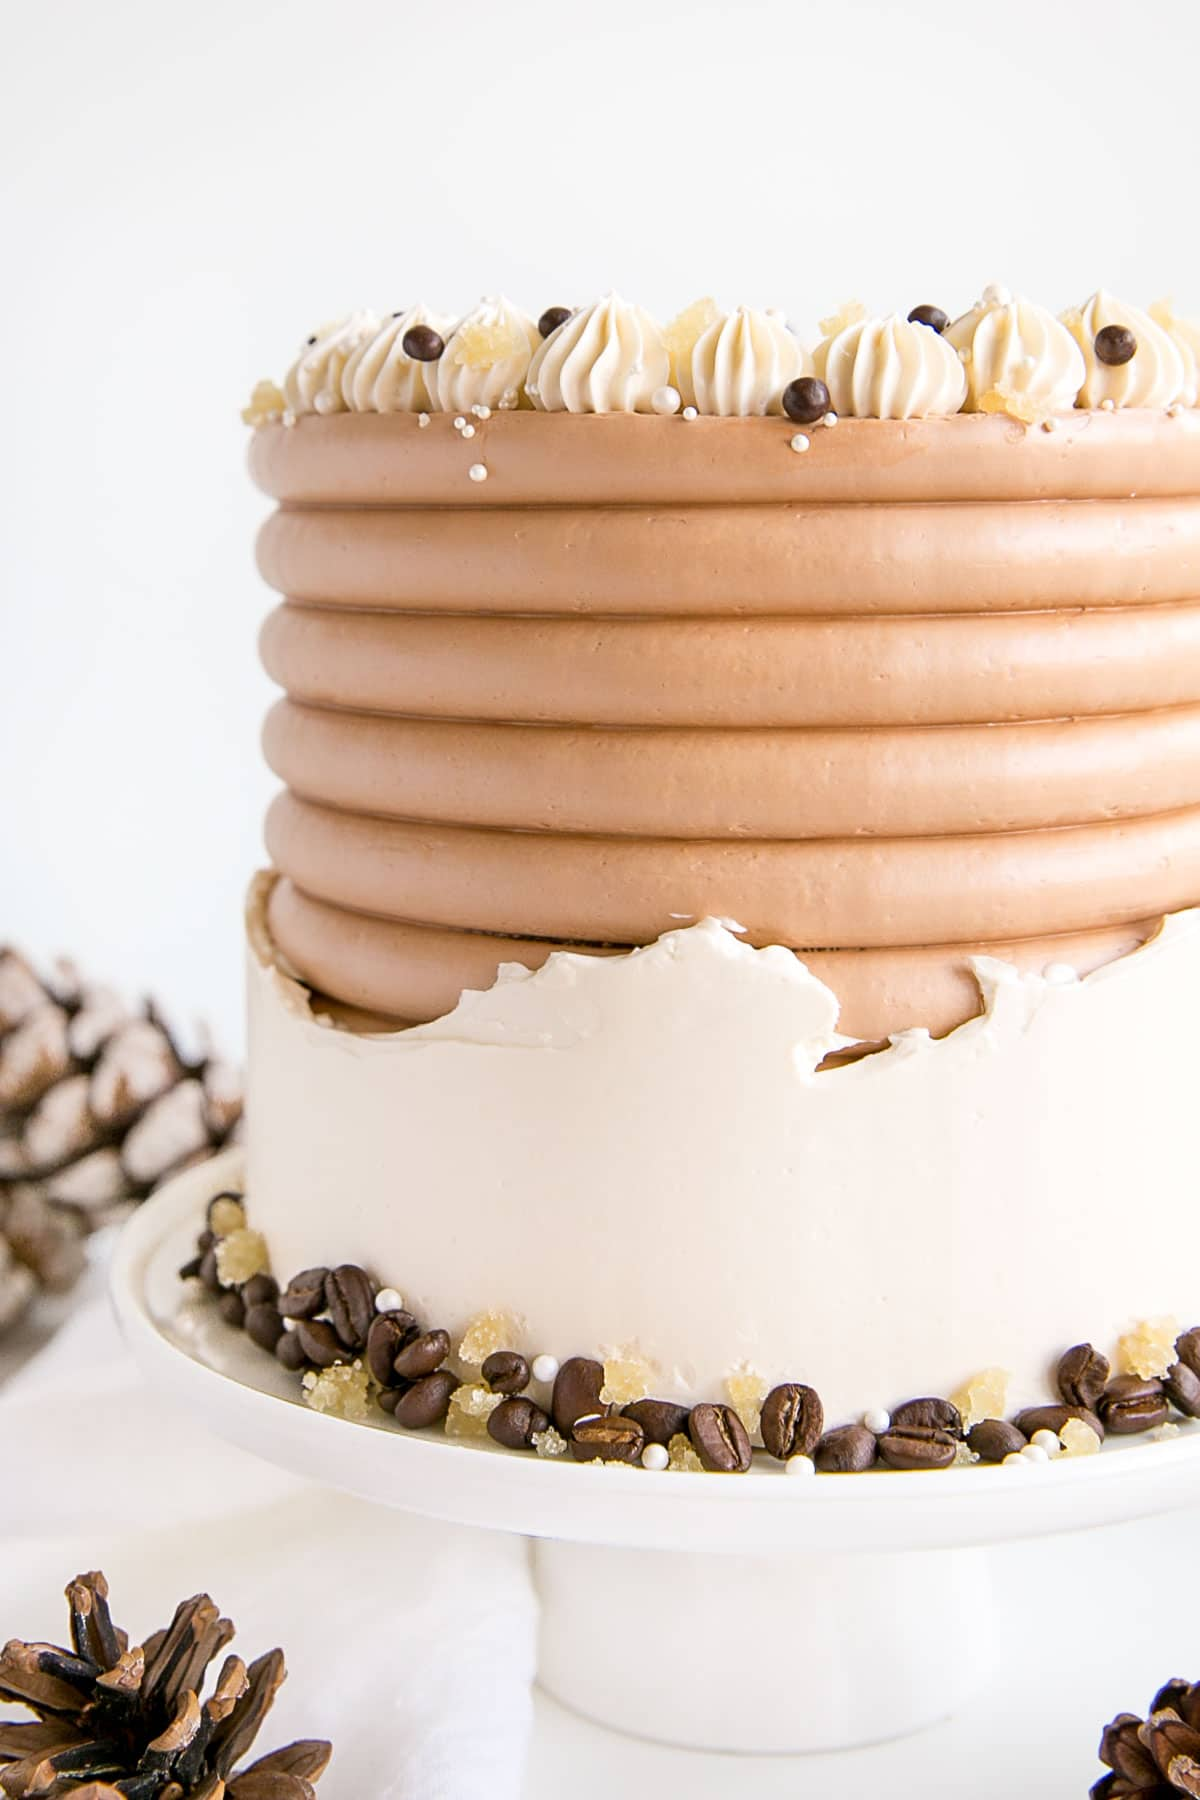 Close up of the side of the cake showing the fault line frosting technique.